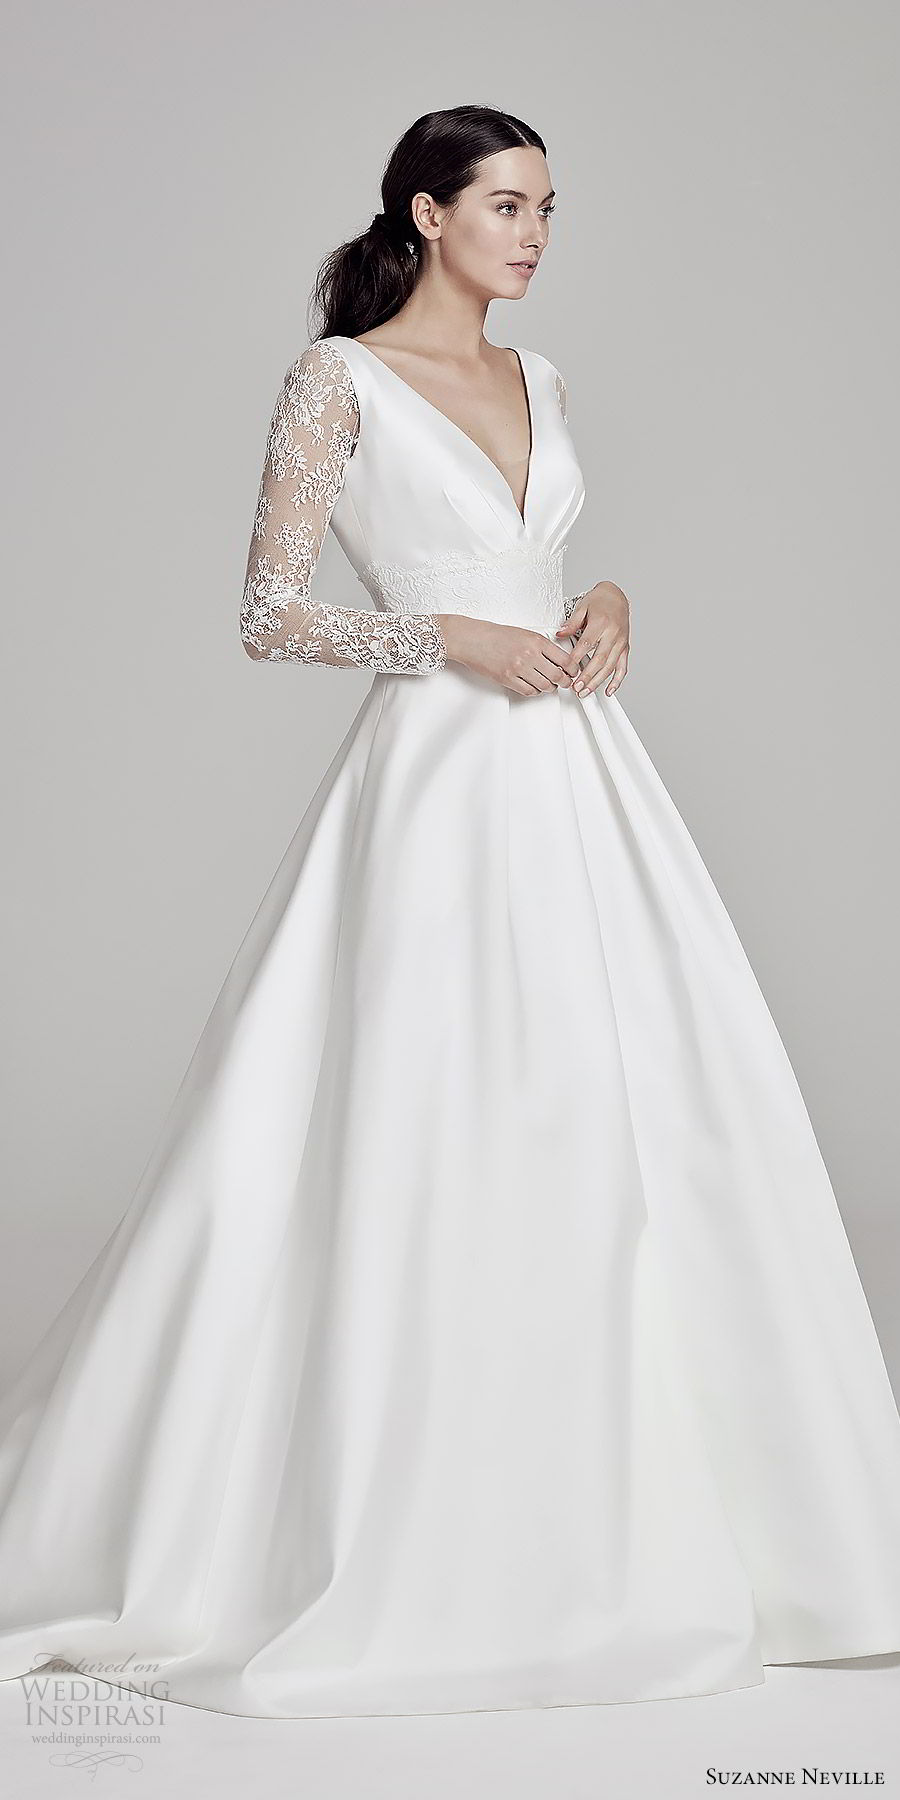 suzanne neville bridal 2019 illusion long sleeves deep v neck minimal a line ball gown wedding dress (beatrix) sweep train elegant romantic mv